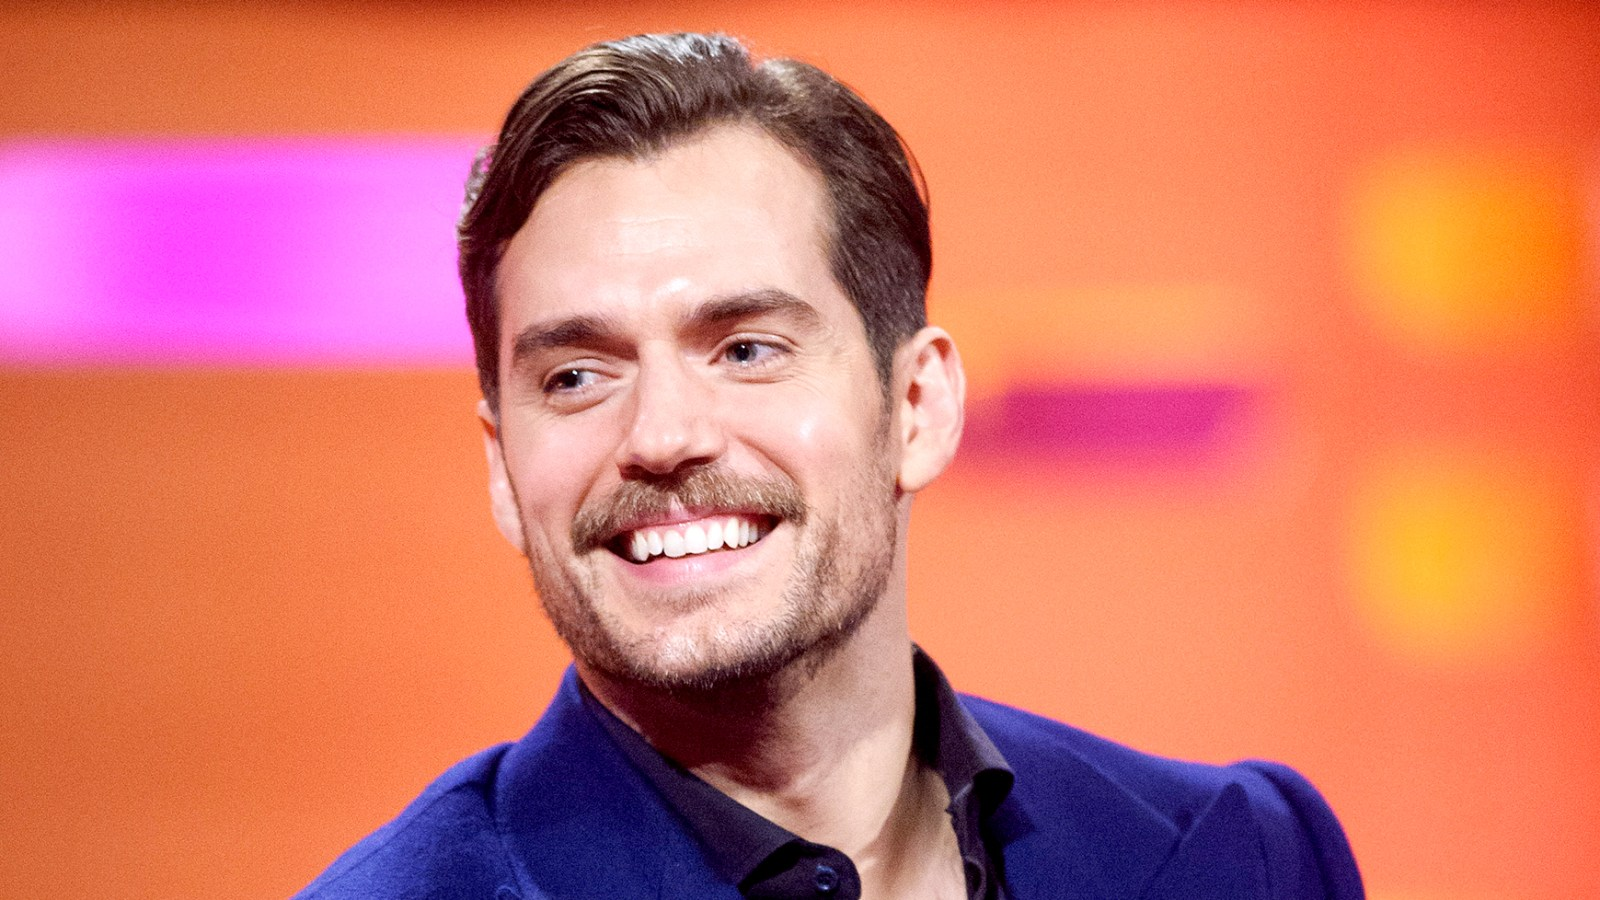 4c94dadda2 Henry Cavill Faces Backlash After Saying He'll 'Be Called a Rapist' for  Flirting